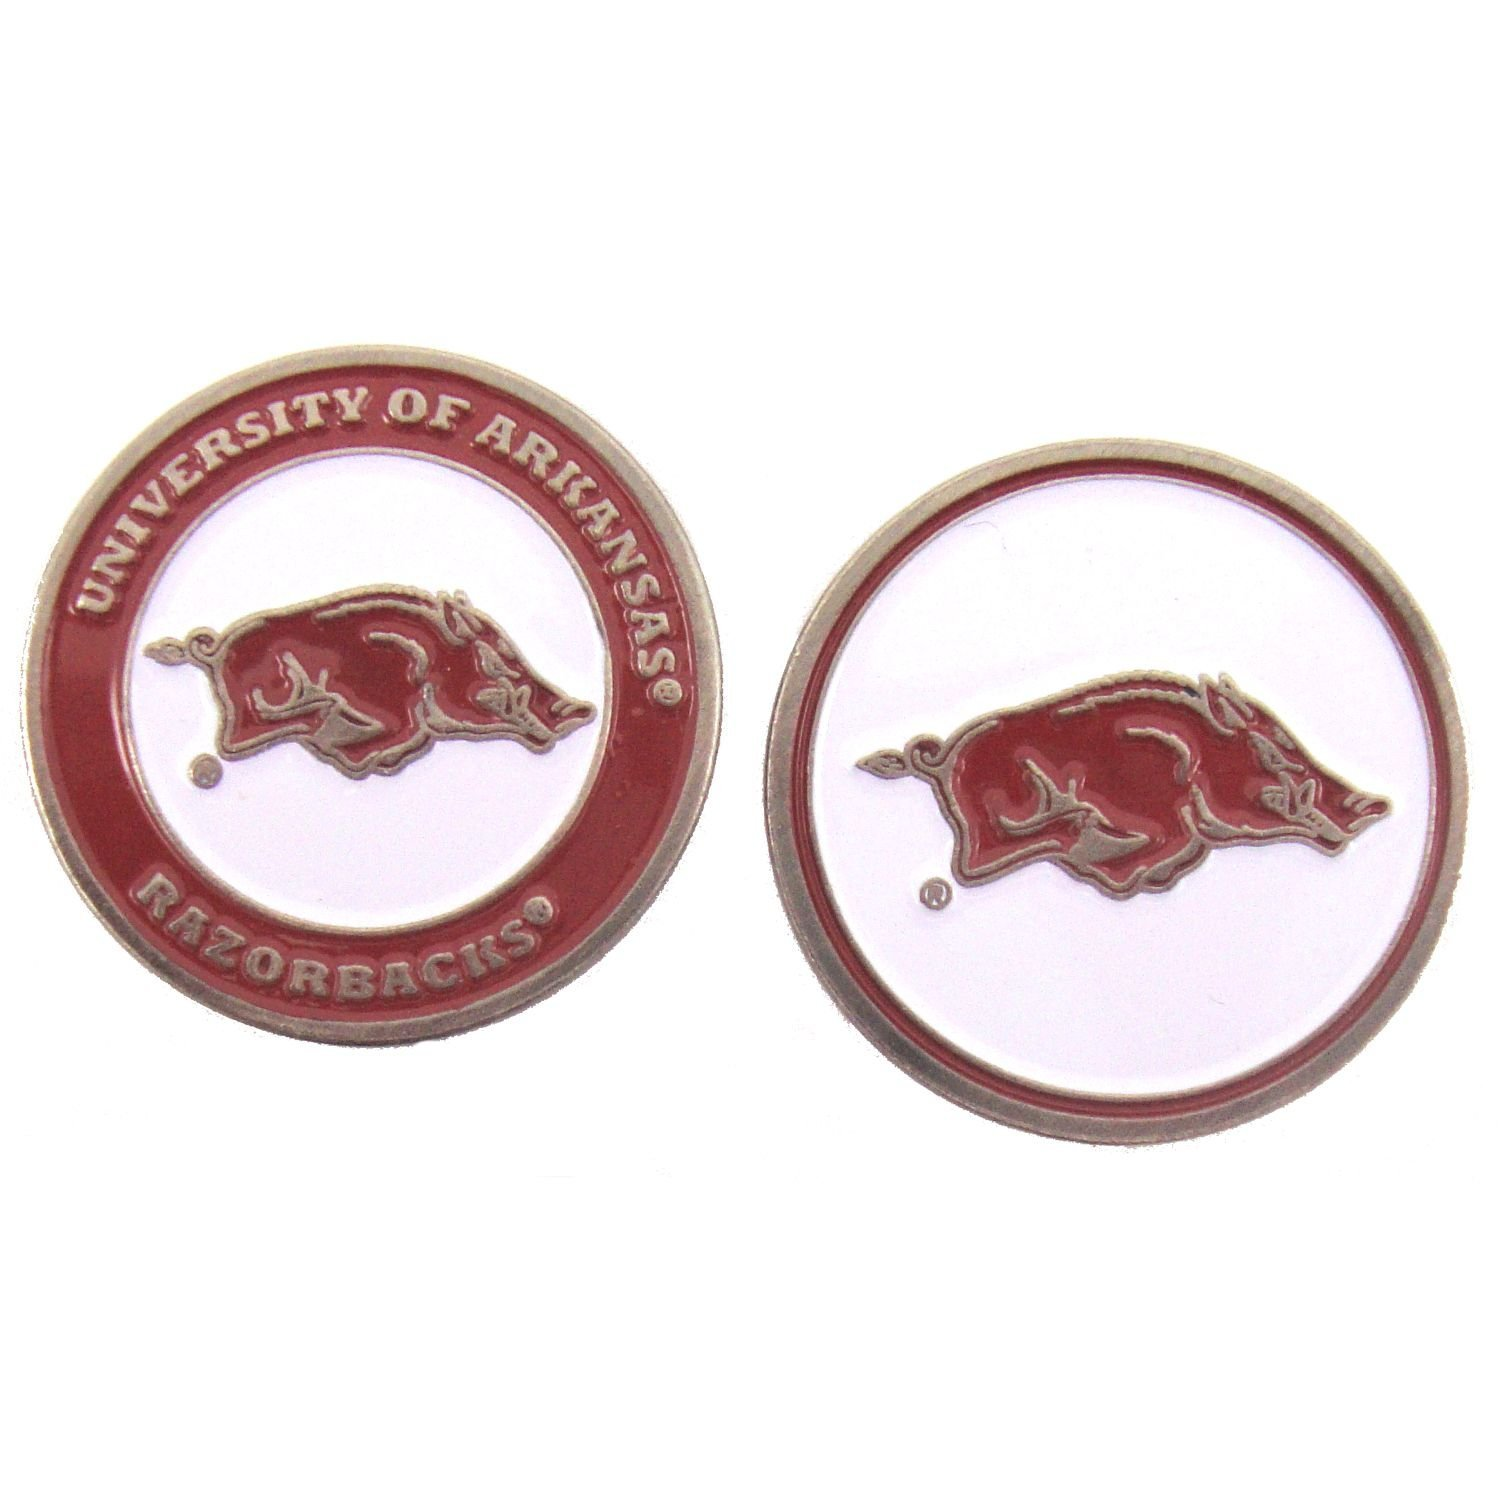 Arkansas Razorbacks Double-Sided Golf Ball Marker, 1 Team Logo Double Sided Ball Marker By Waggle Pro Shop,USA